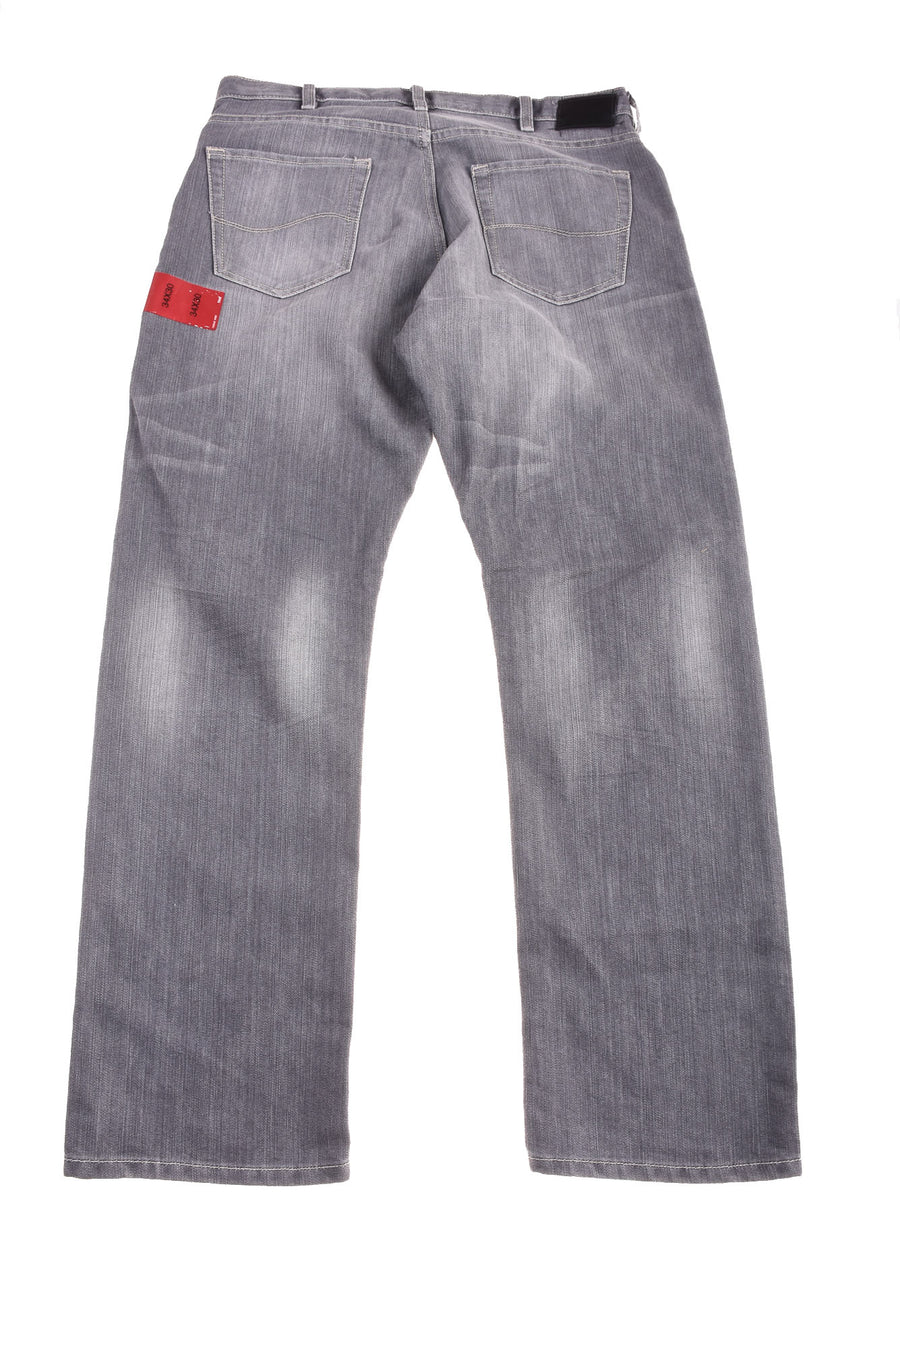 NEW Lee Men's Jeans 34x30 Revolver